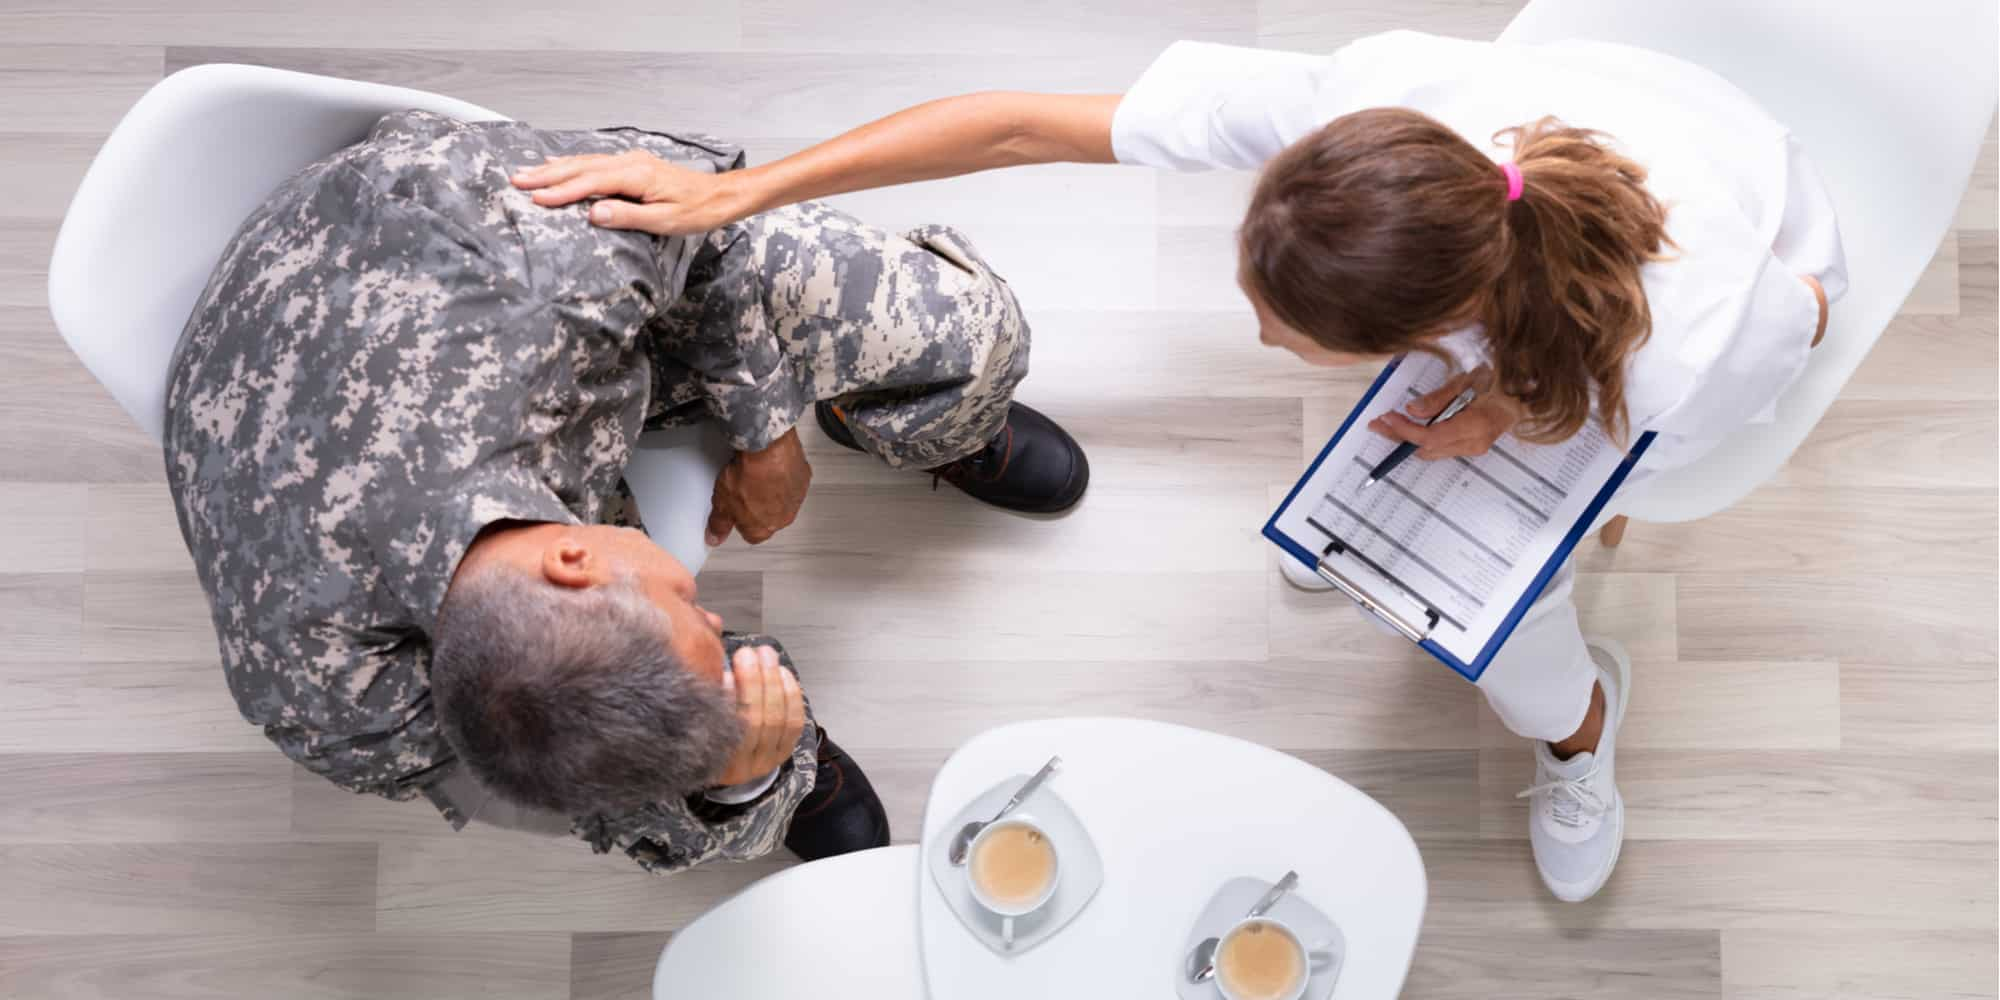 Resources For Veterans And Service Members